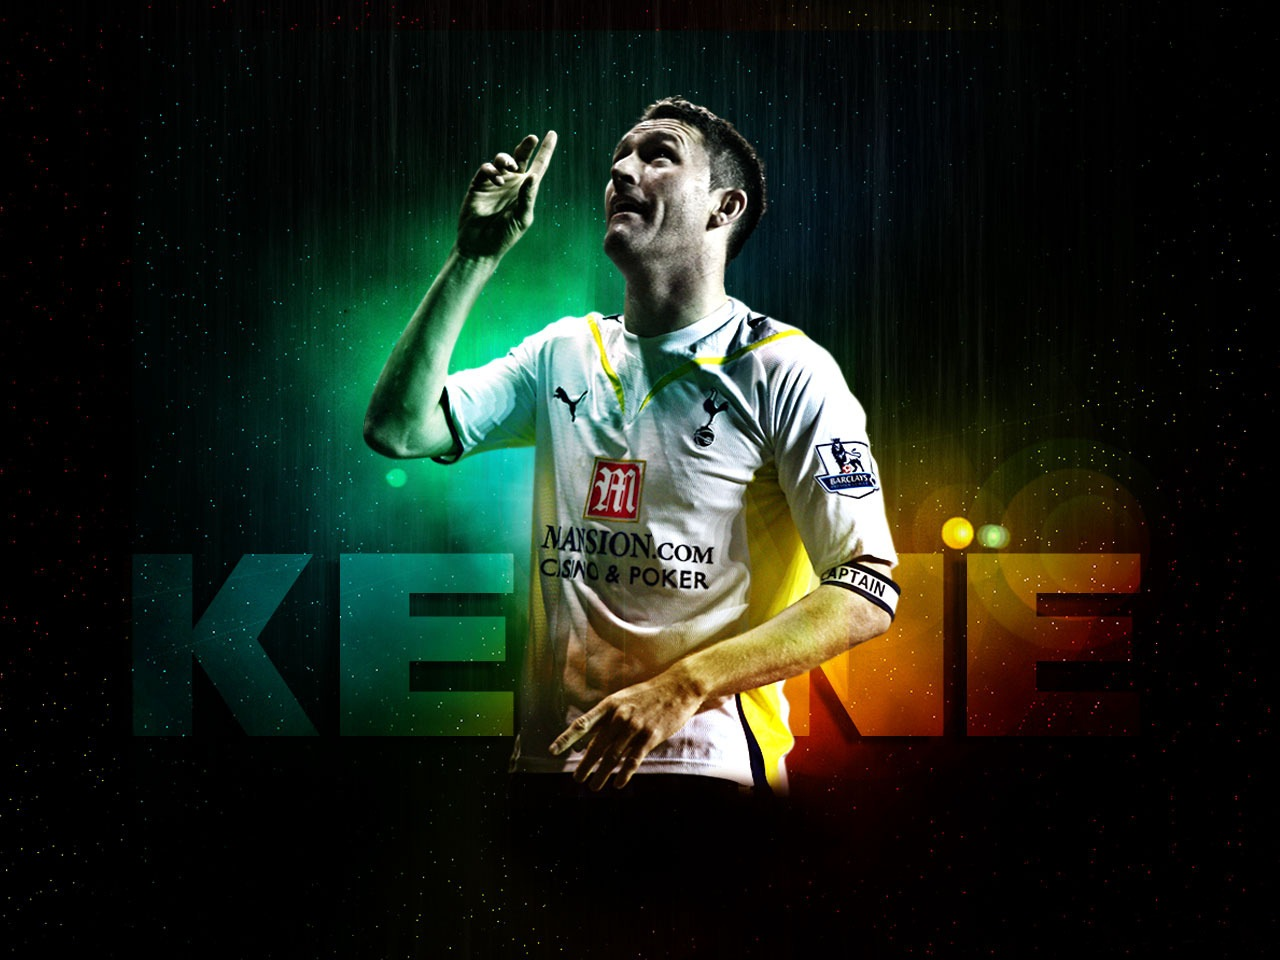 Keane Hd: Free High-Definition Wallpapers: UEFA Euro 2012 Football